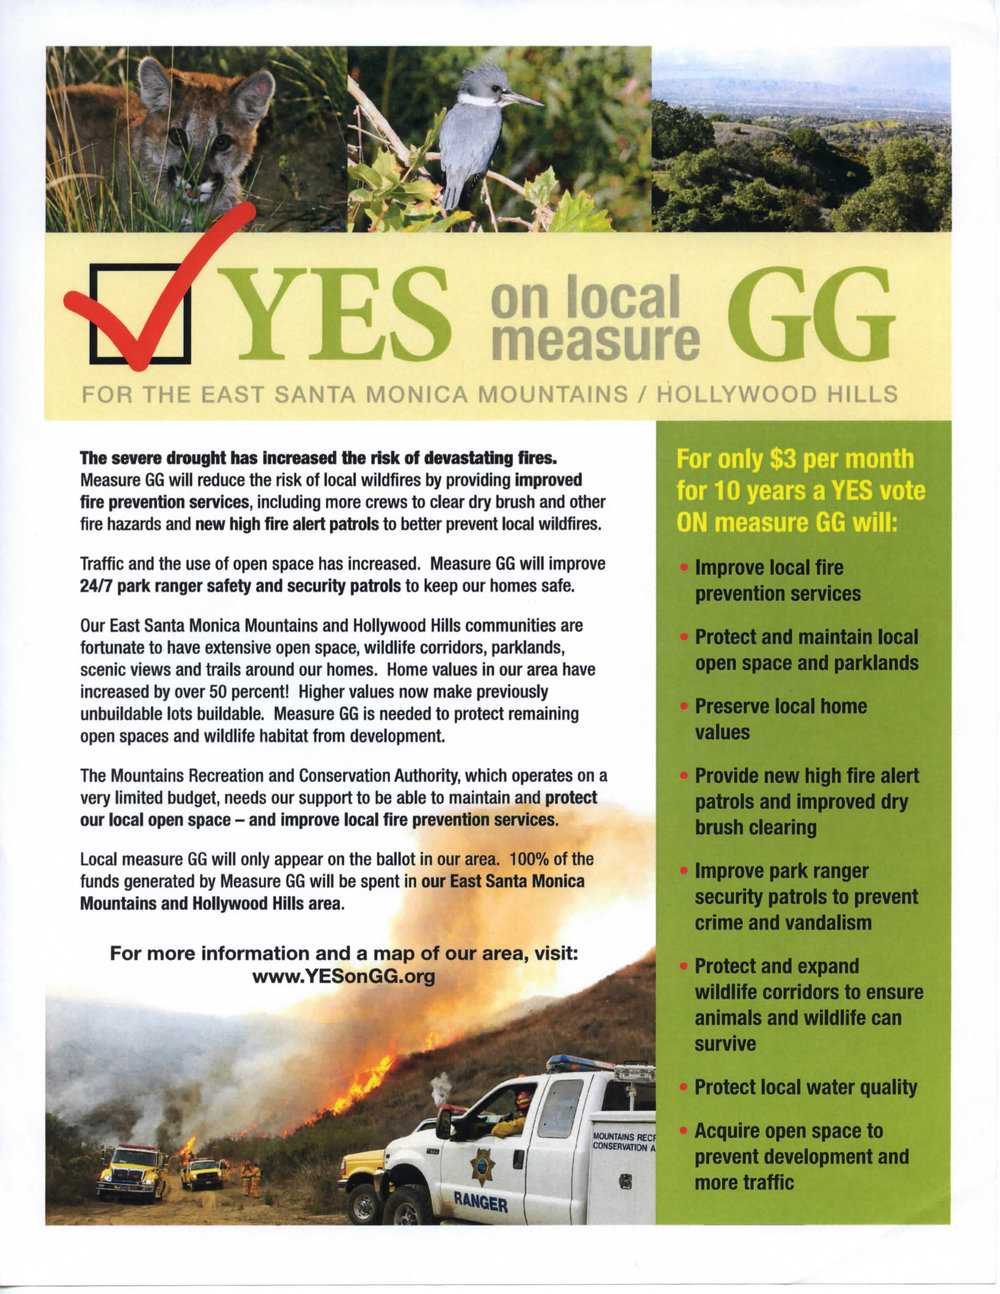 Yes on local measure GG.jpg